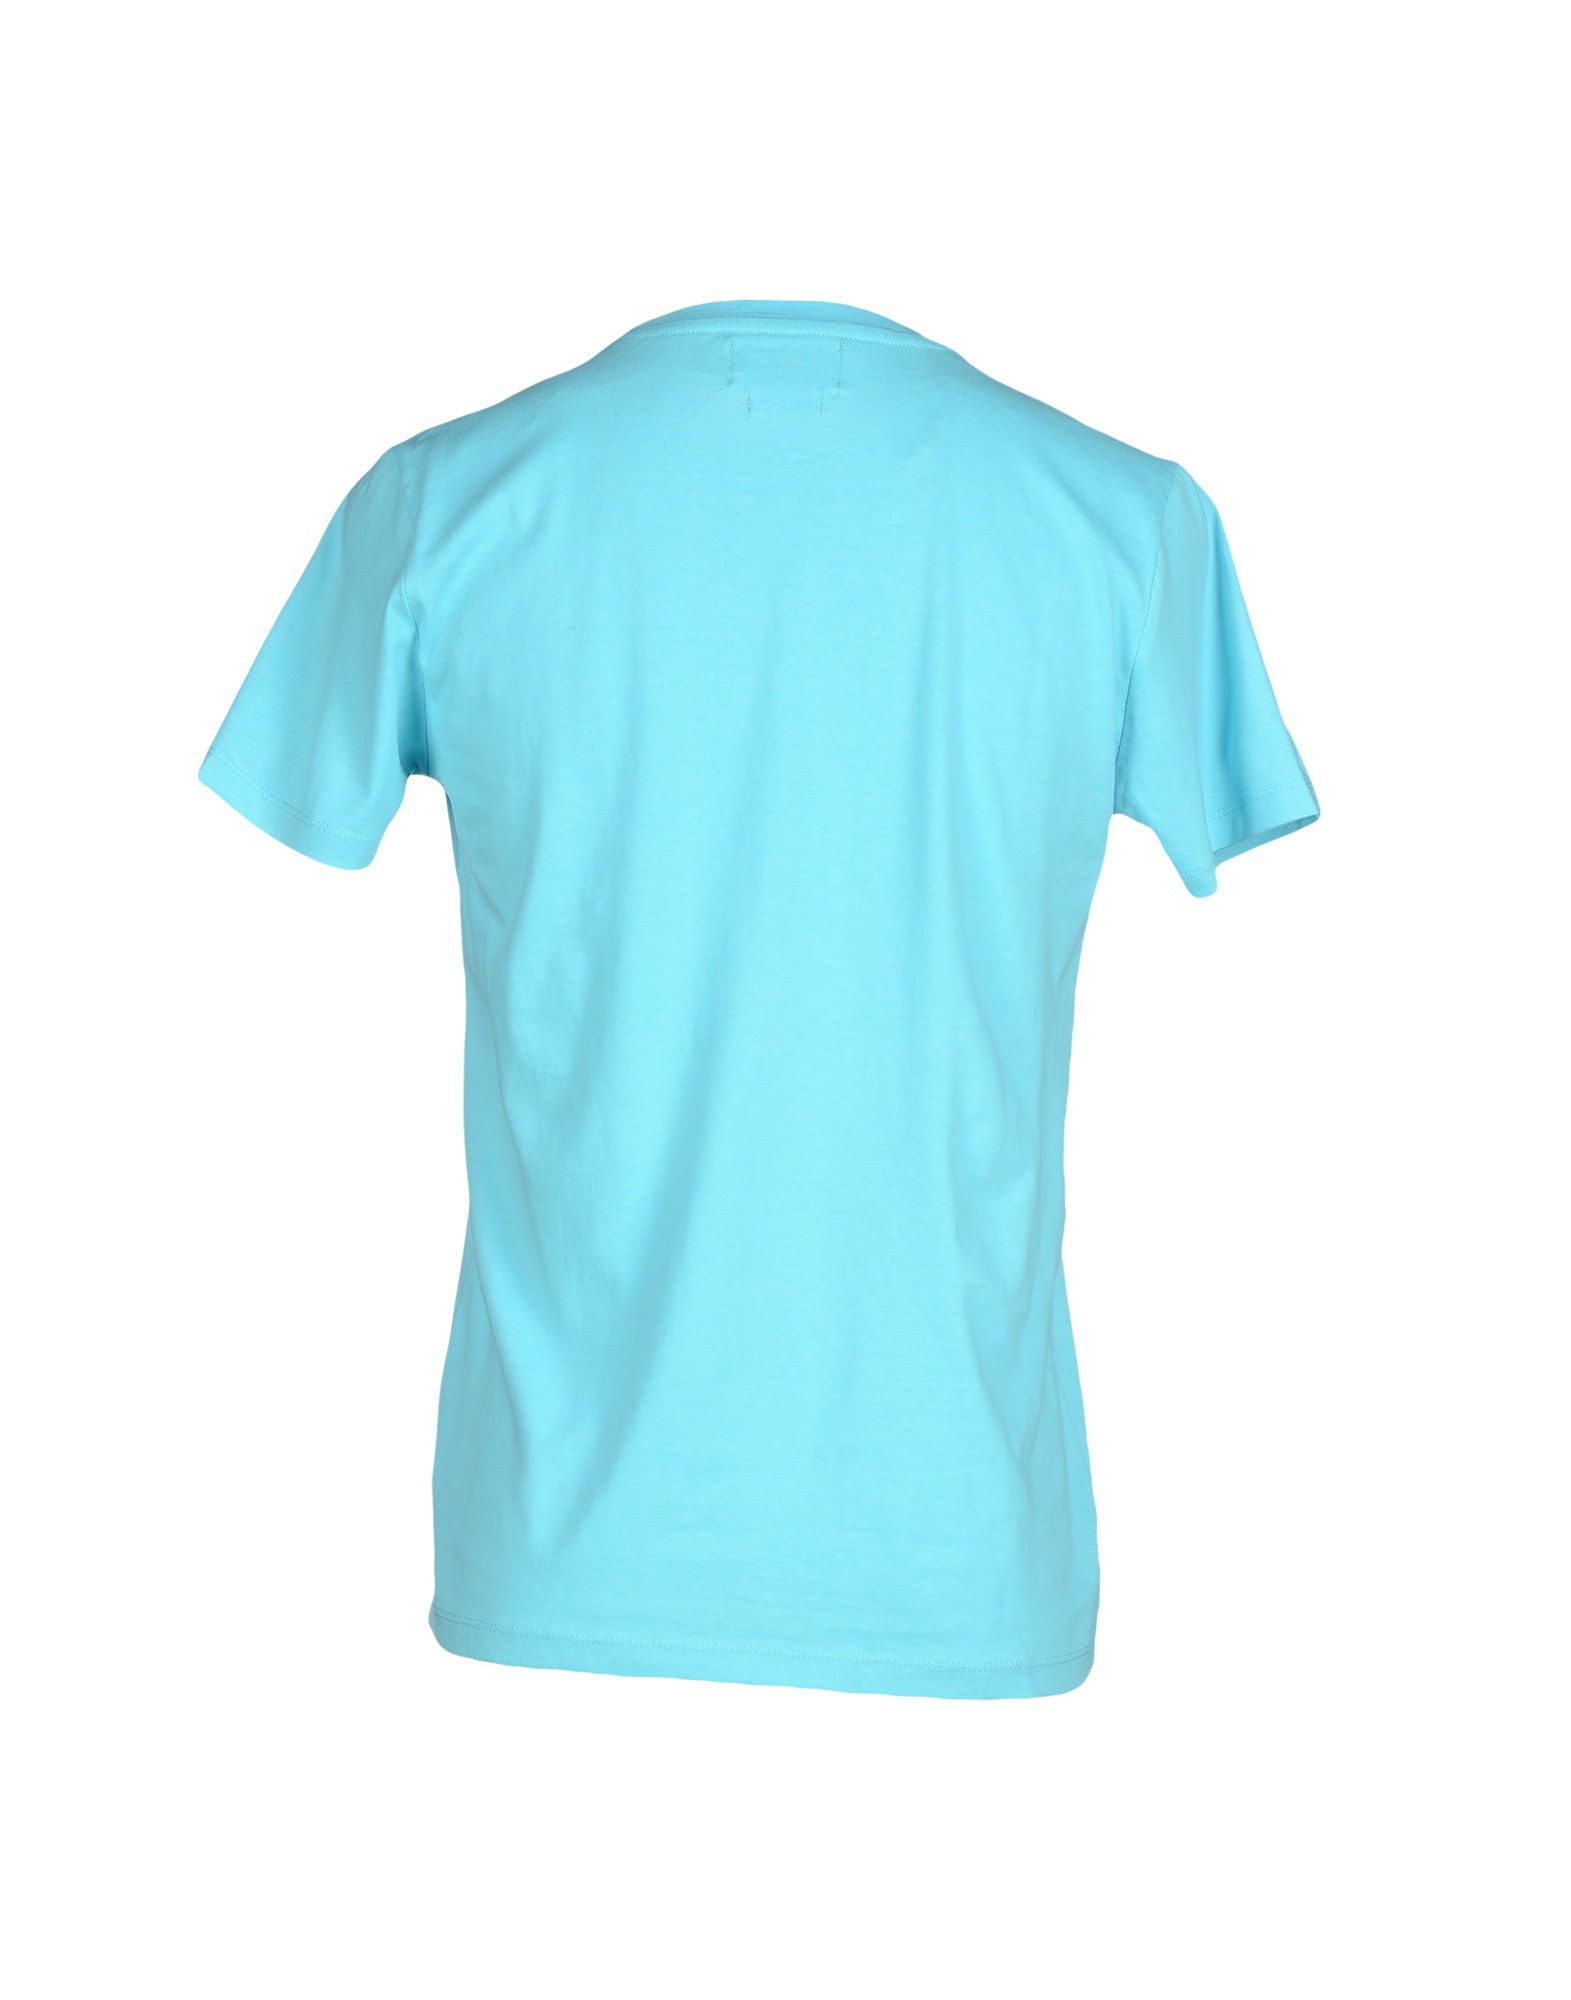 Lyst Beverly Hills Polo Club T Shirt In Blue For Men